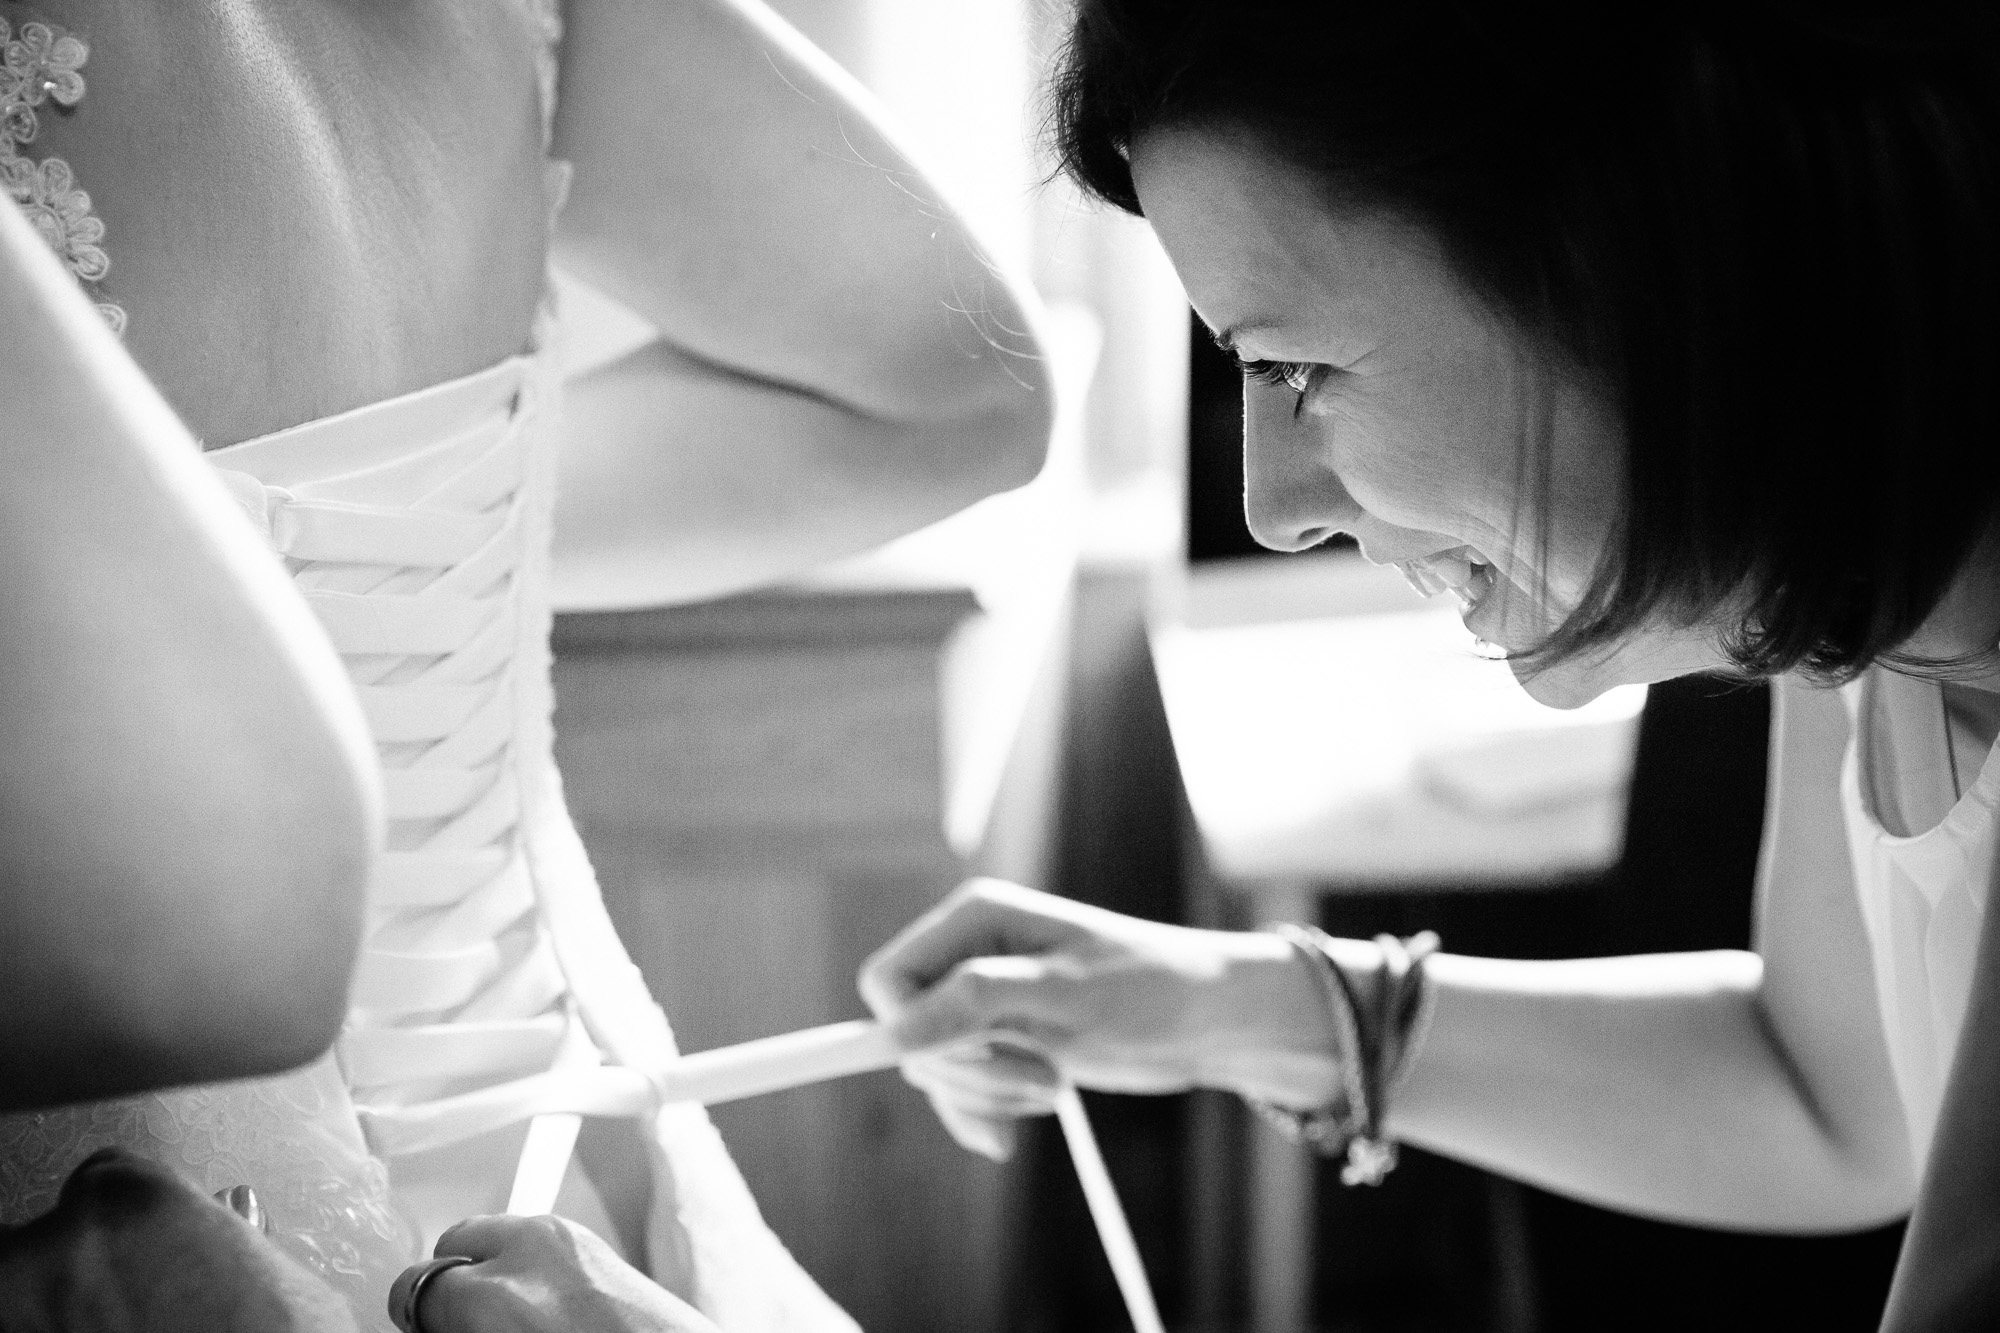 Hochzeit Getting Ready | © Andreas Bender